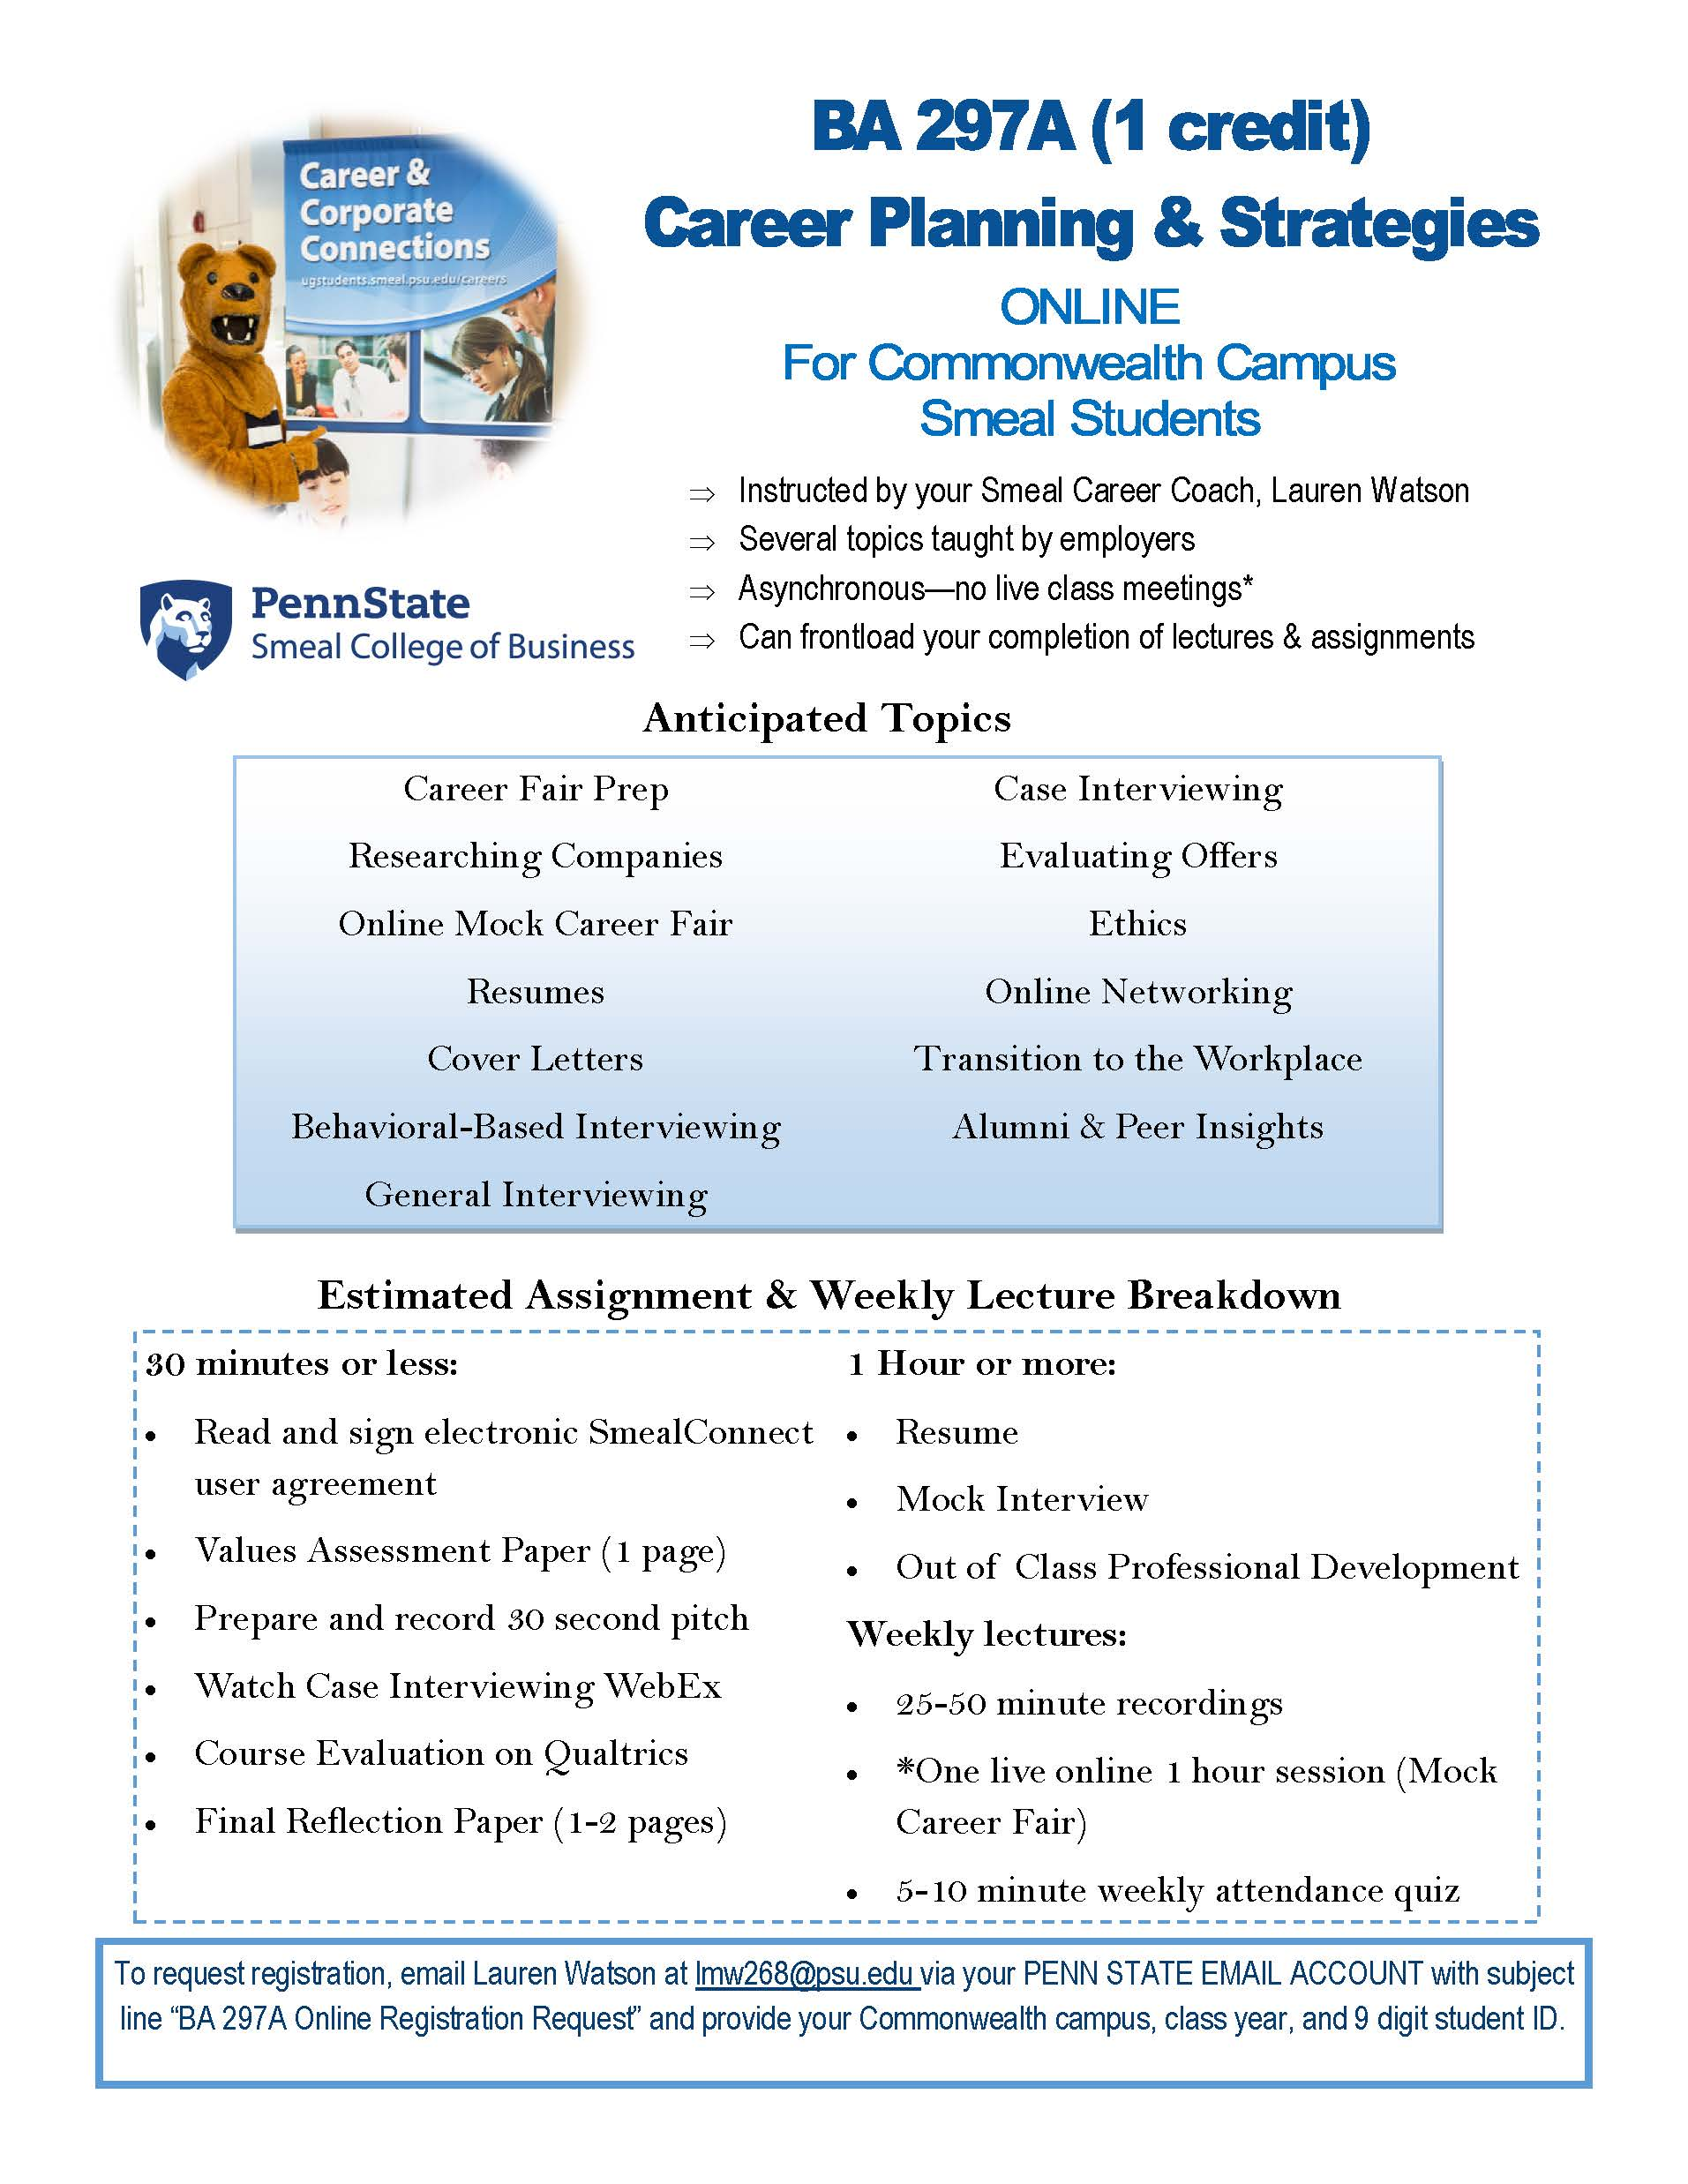 online cr career planning strategies for commonwealth campus fall 2016 ba 297a online promotional flyer